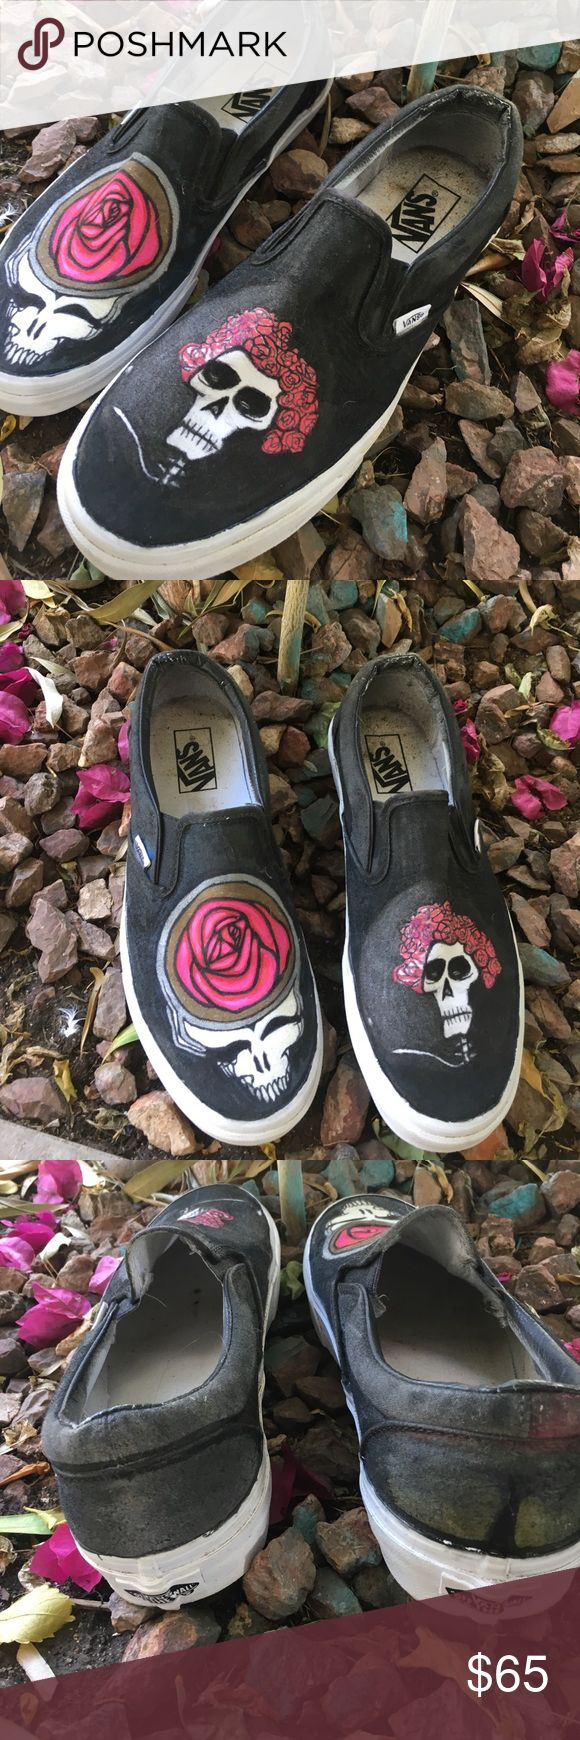 Custom Grateful Dead steal your face vans size 9 Selling men's handmade size 9 Grateful Dead paint maker and hand drawn oil based paint (waterproof) Vans shoes ! Enjoy feel free to ask any questions Vans Shoes Sneakers